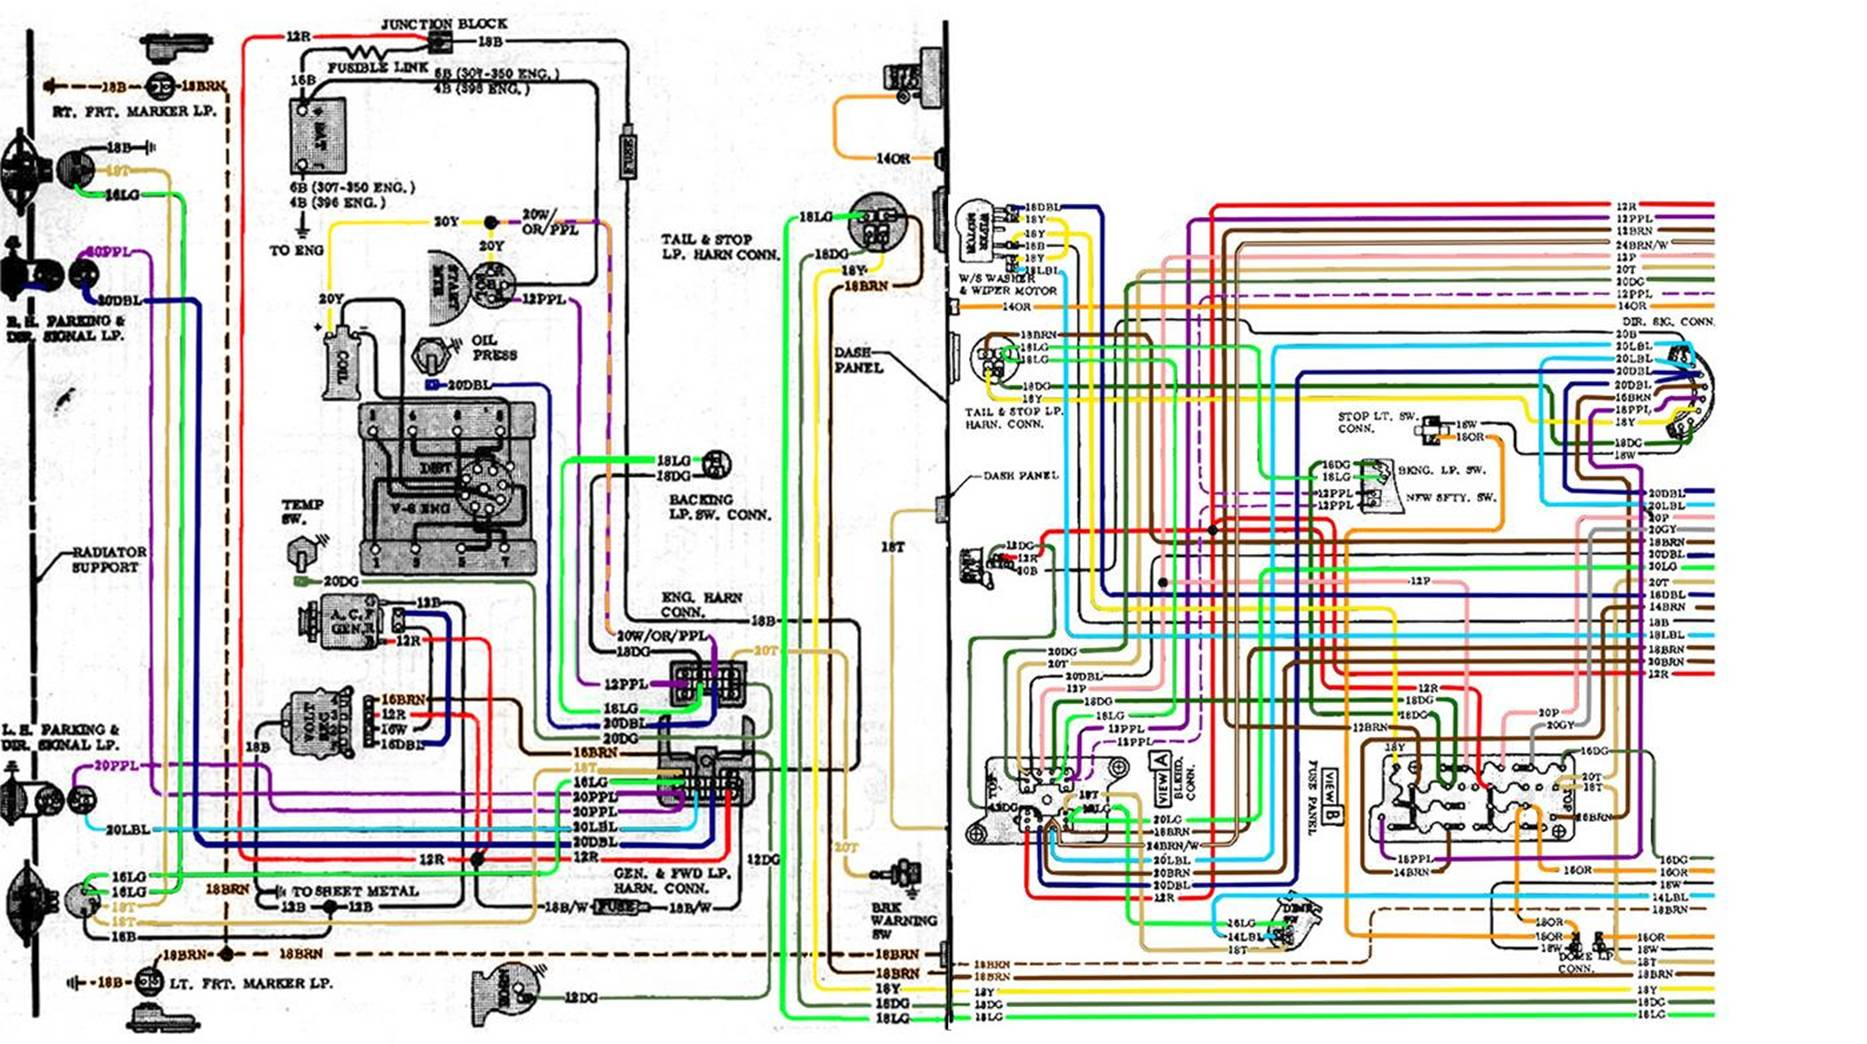 69 Gto Engine Wiring Diagram Circuit And Hub 68 Gmc Pickup Diagrams Trusted U2022 Rh Soulmatestyle Co 66 Pontiac 1968